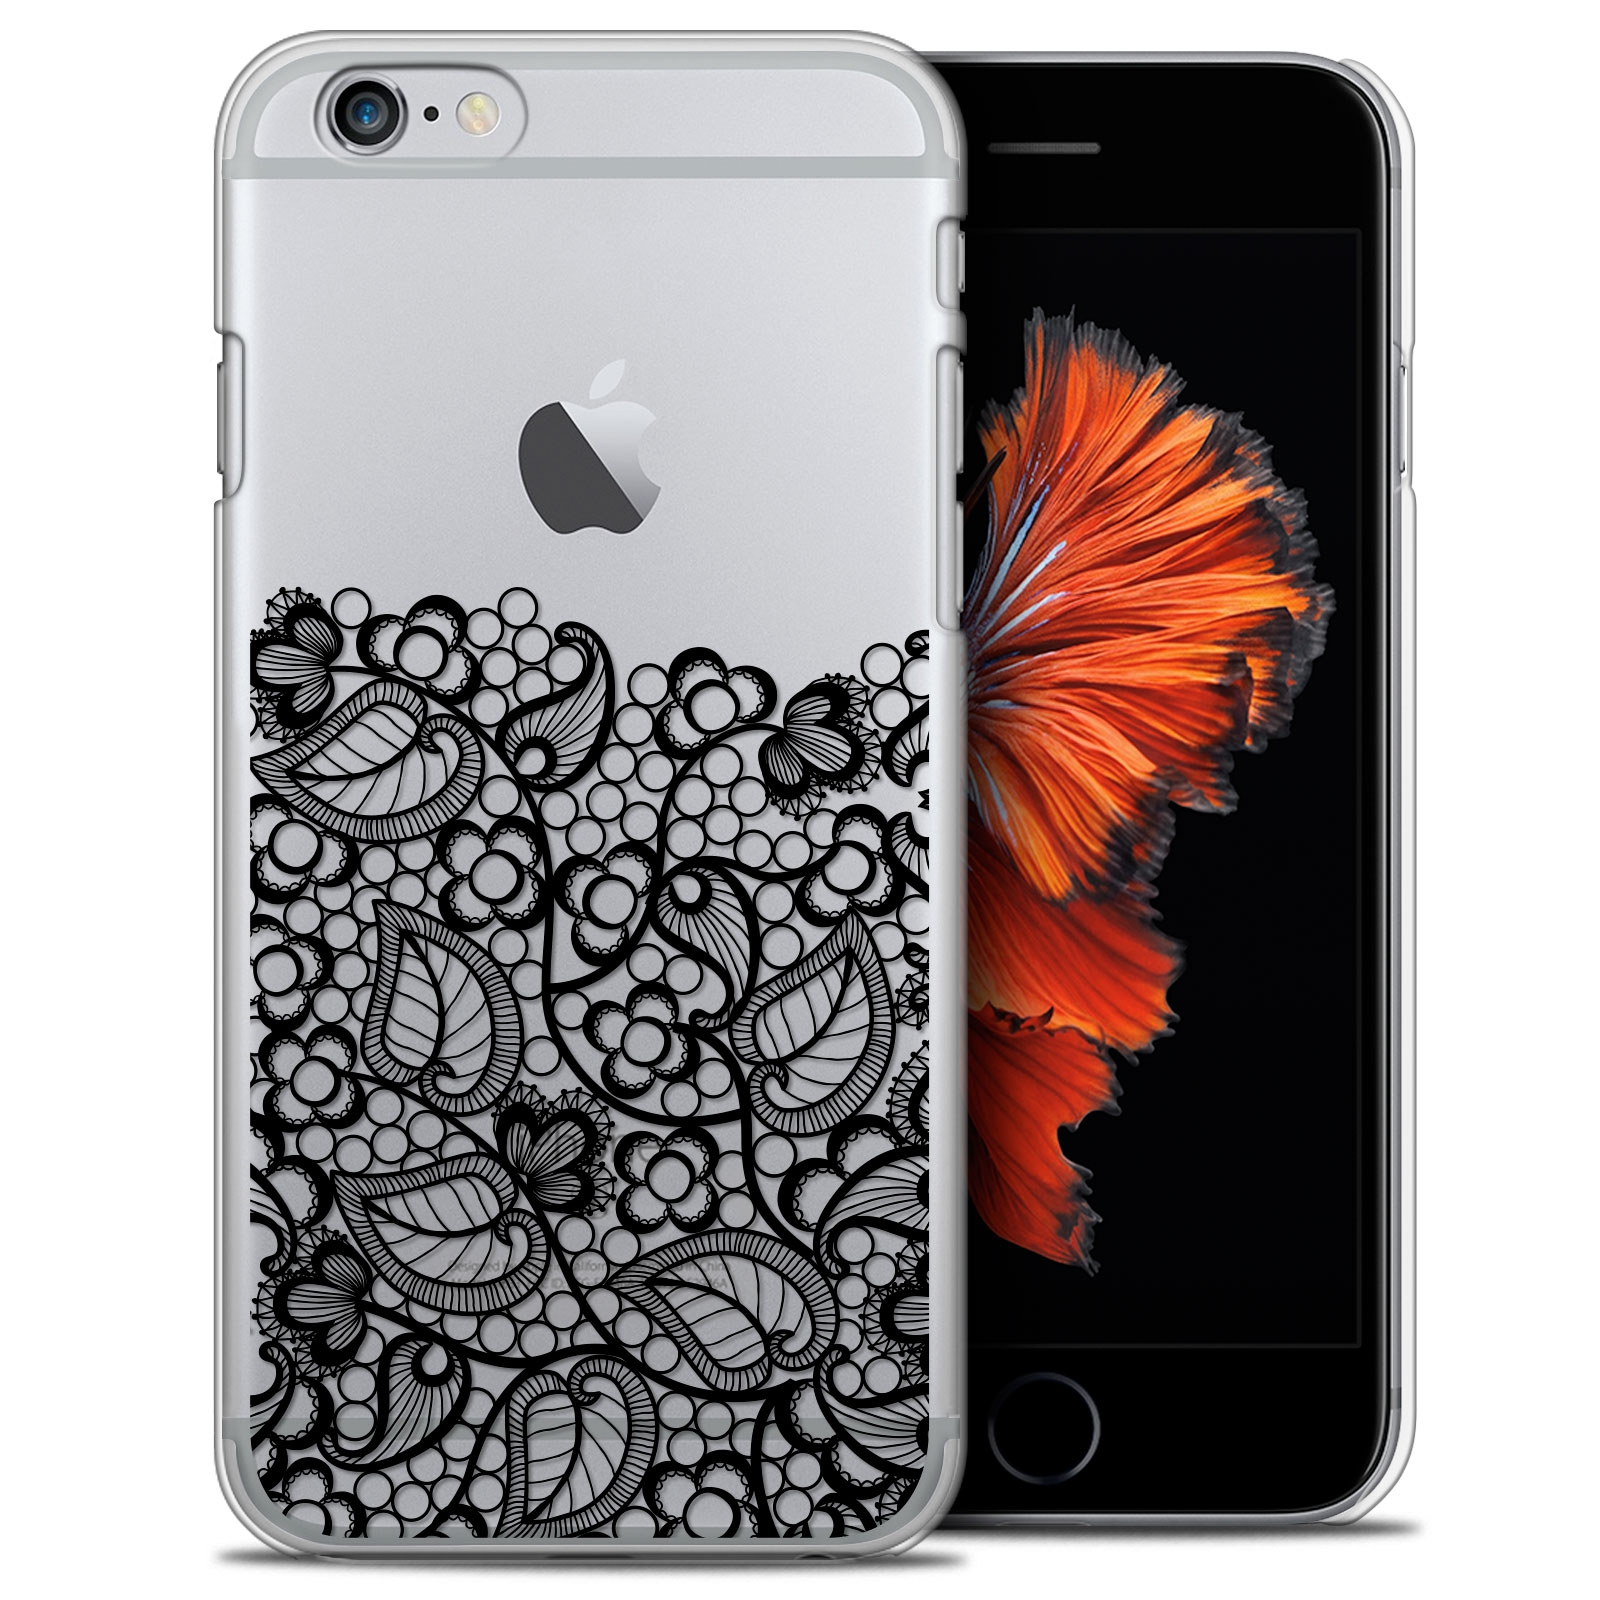 coque crystal iphone 6 6s plus 55 extra fine spring bas dentelle noir